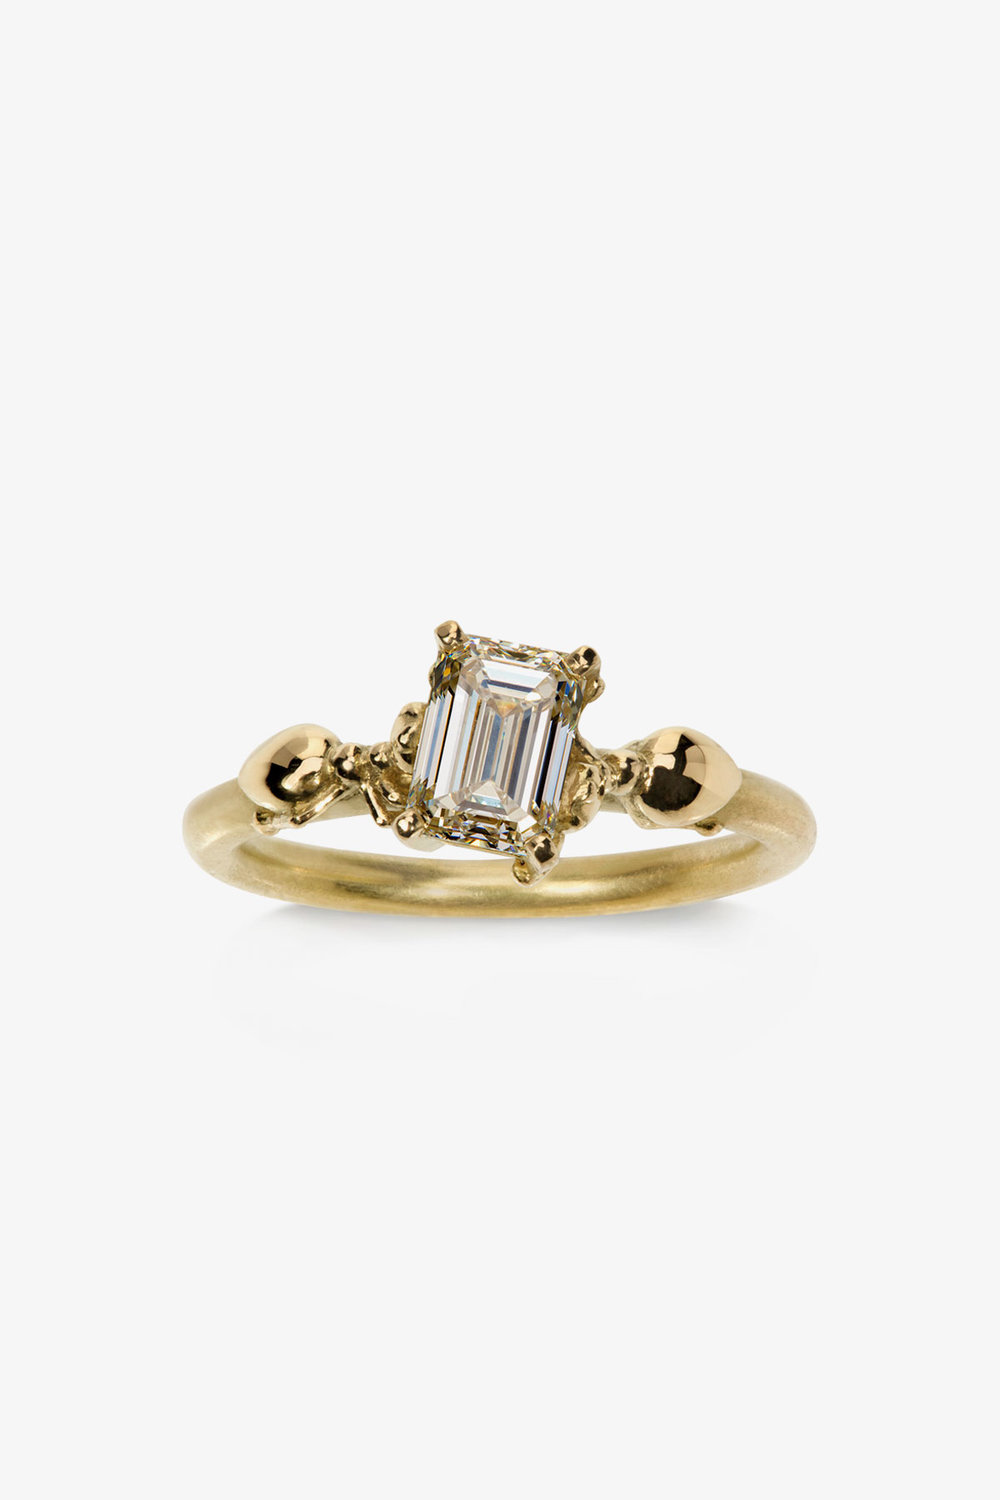 bespoke-emerald-cut-ring.jpg